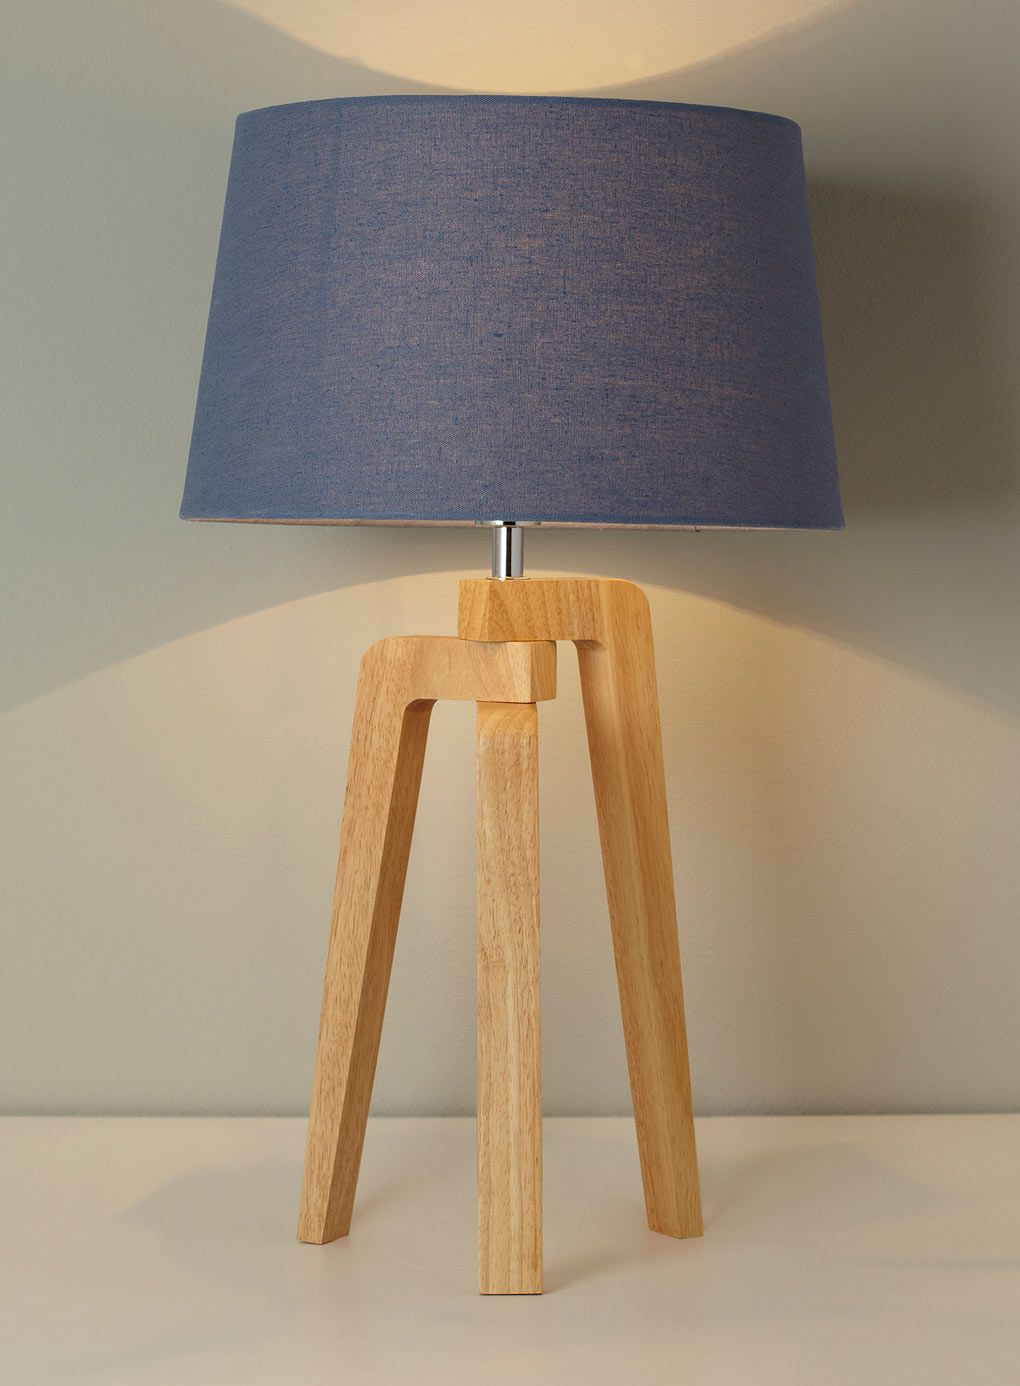 Coby Tripod Table Lamp Price £40.00 Abajur de madeira